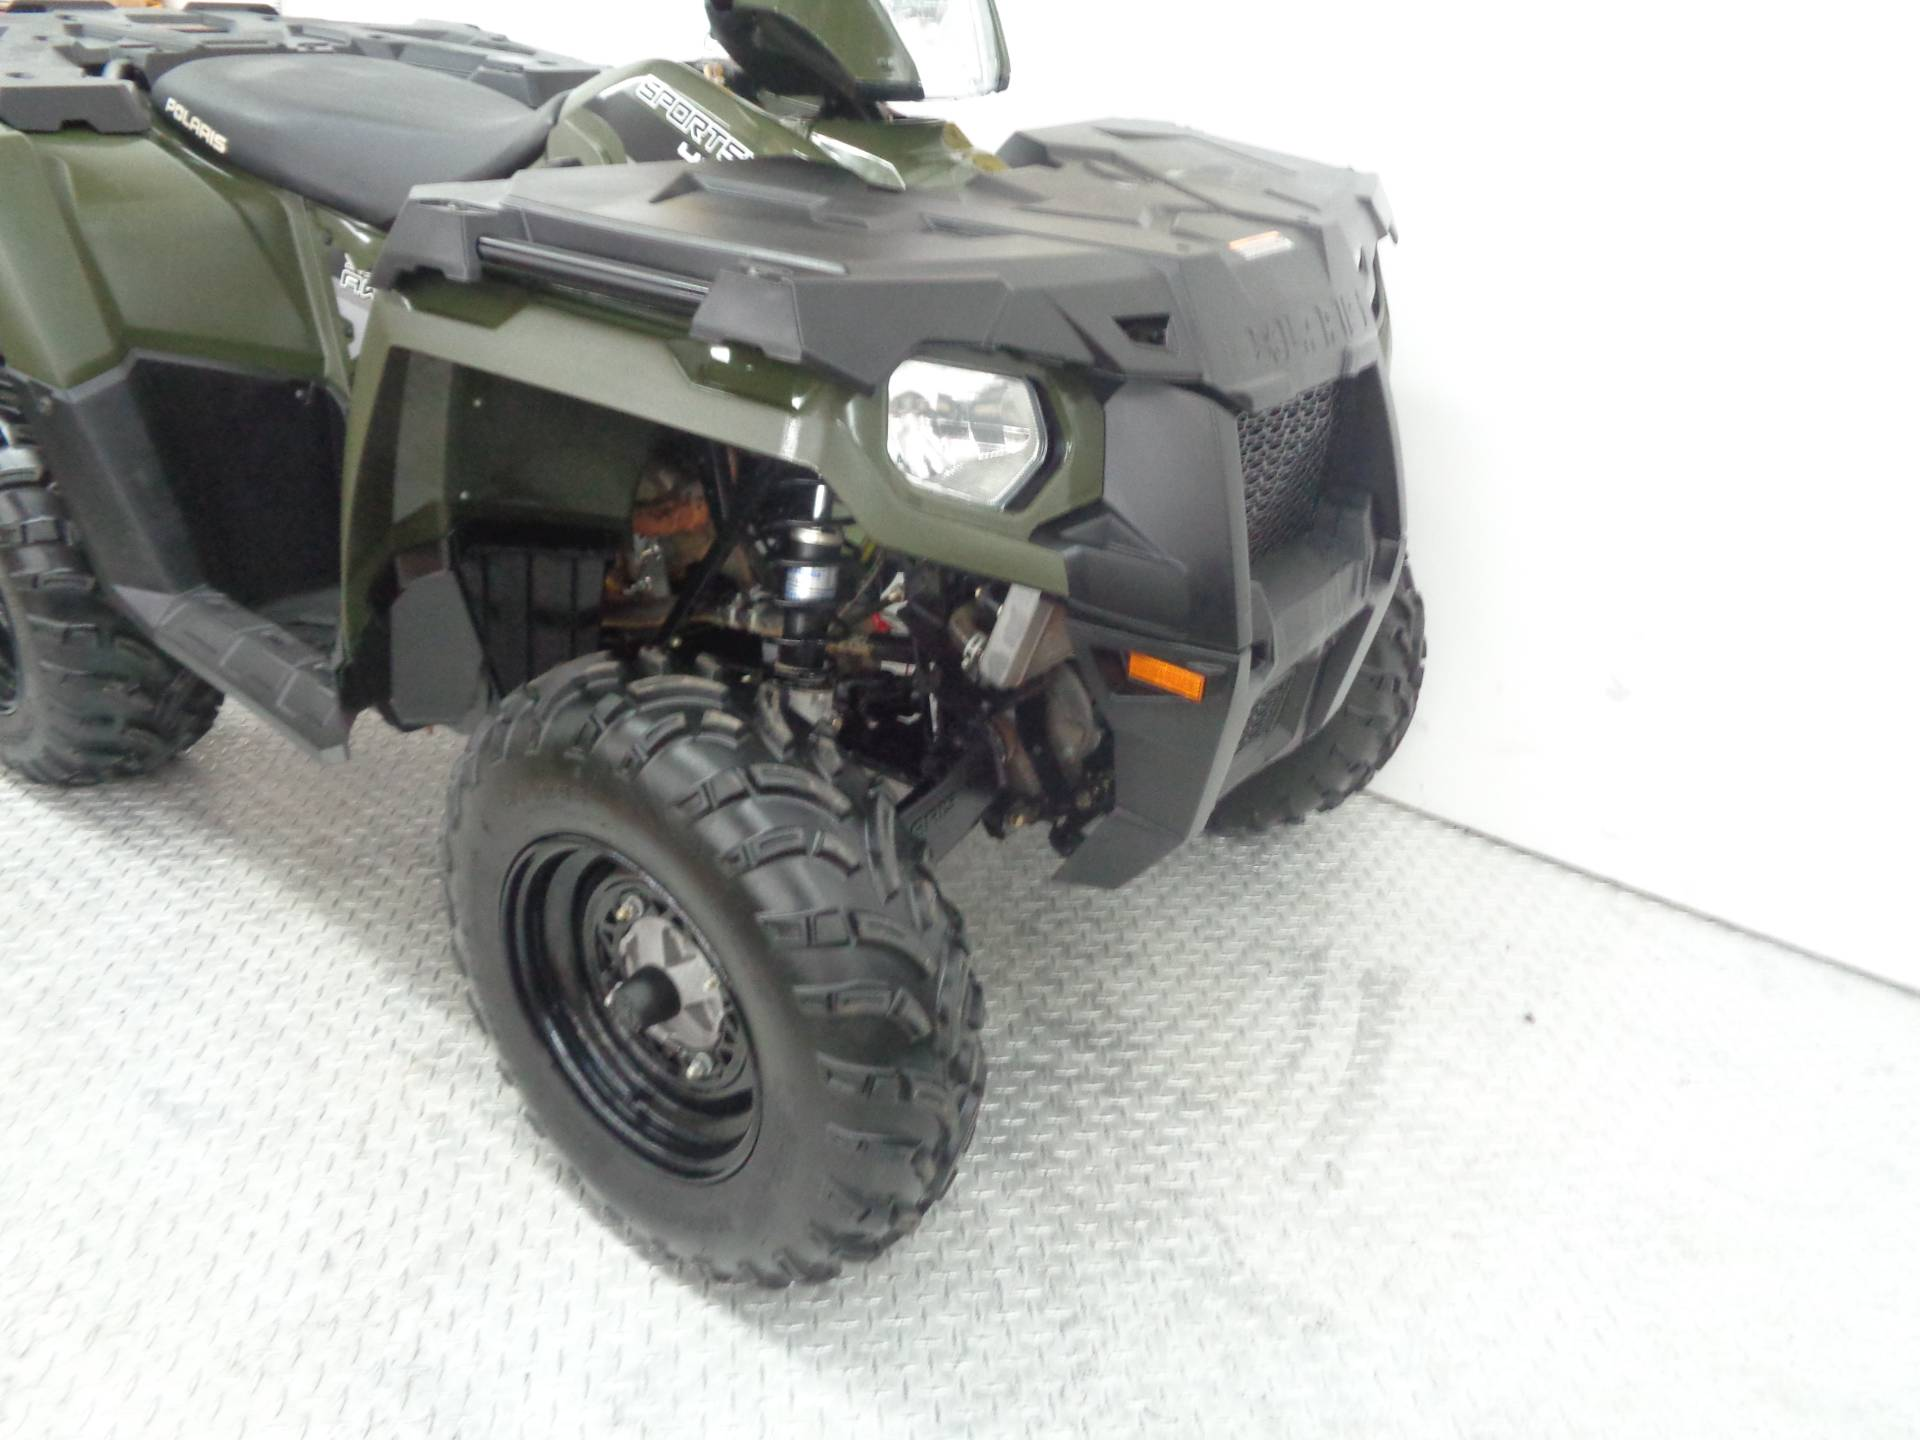 2019 Polaris Sportsman 450 H.O. in Tulsa, Oklahoma - Photo 2